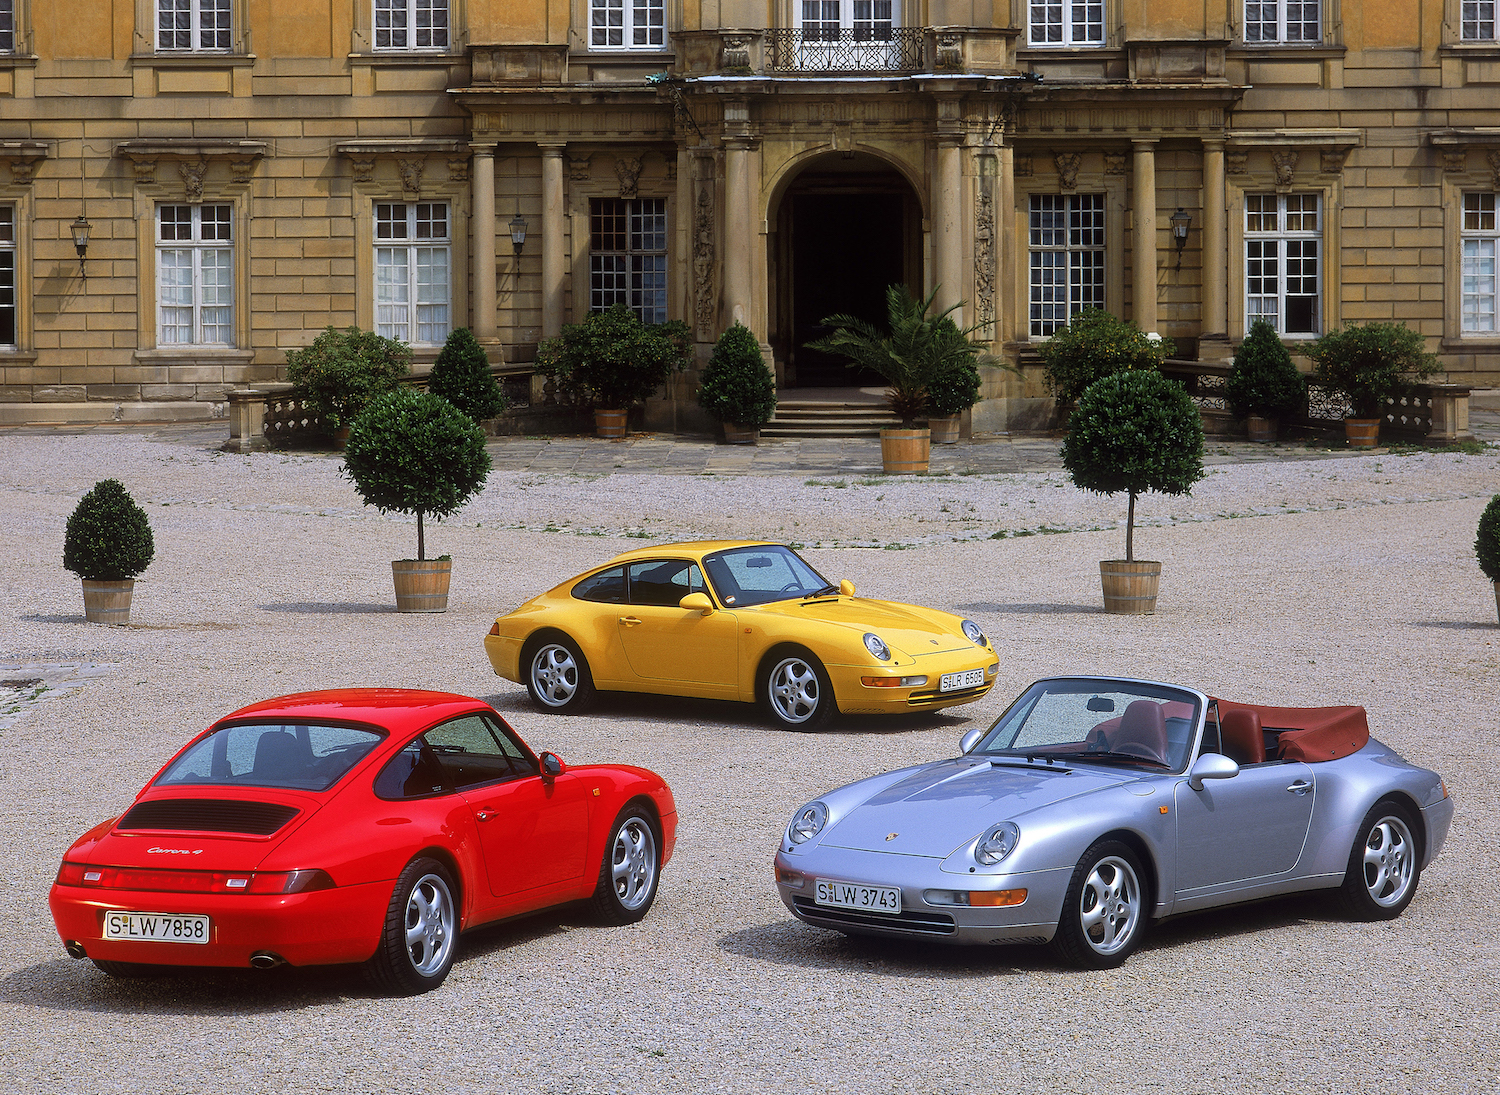 933 cars red yellow silver